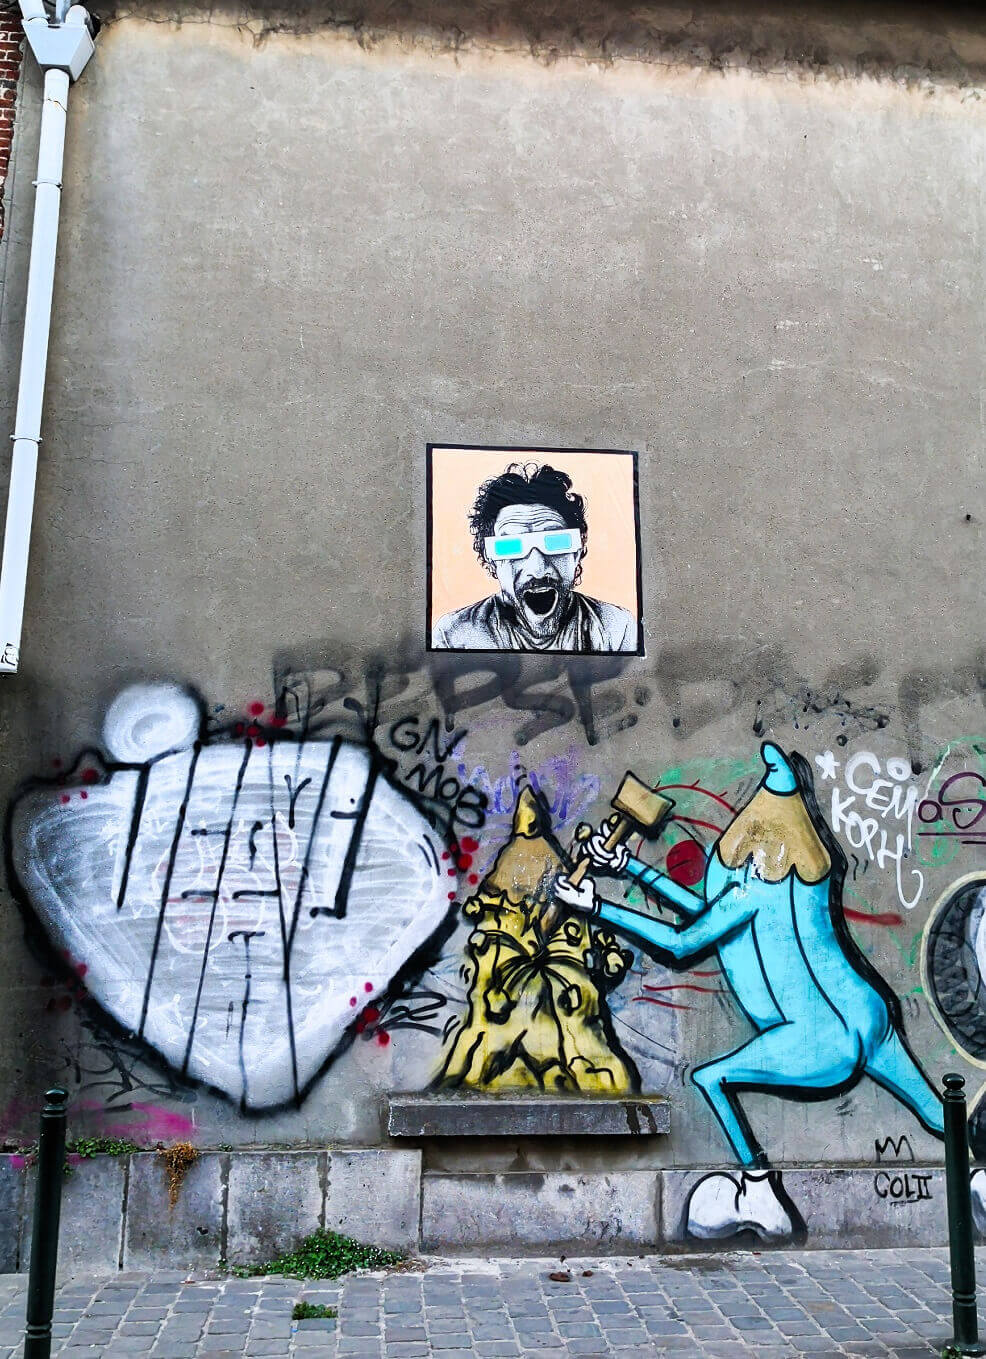 iaggiare-zaino-in-spalla-bruxelles-urban-art-2